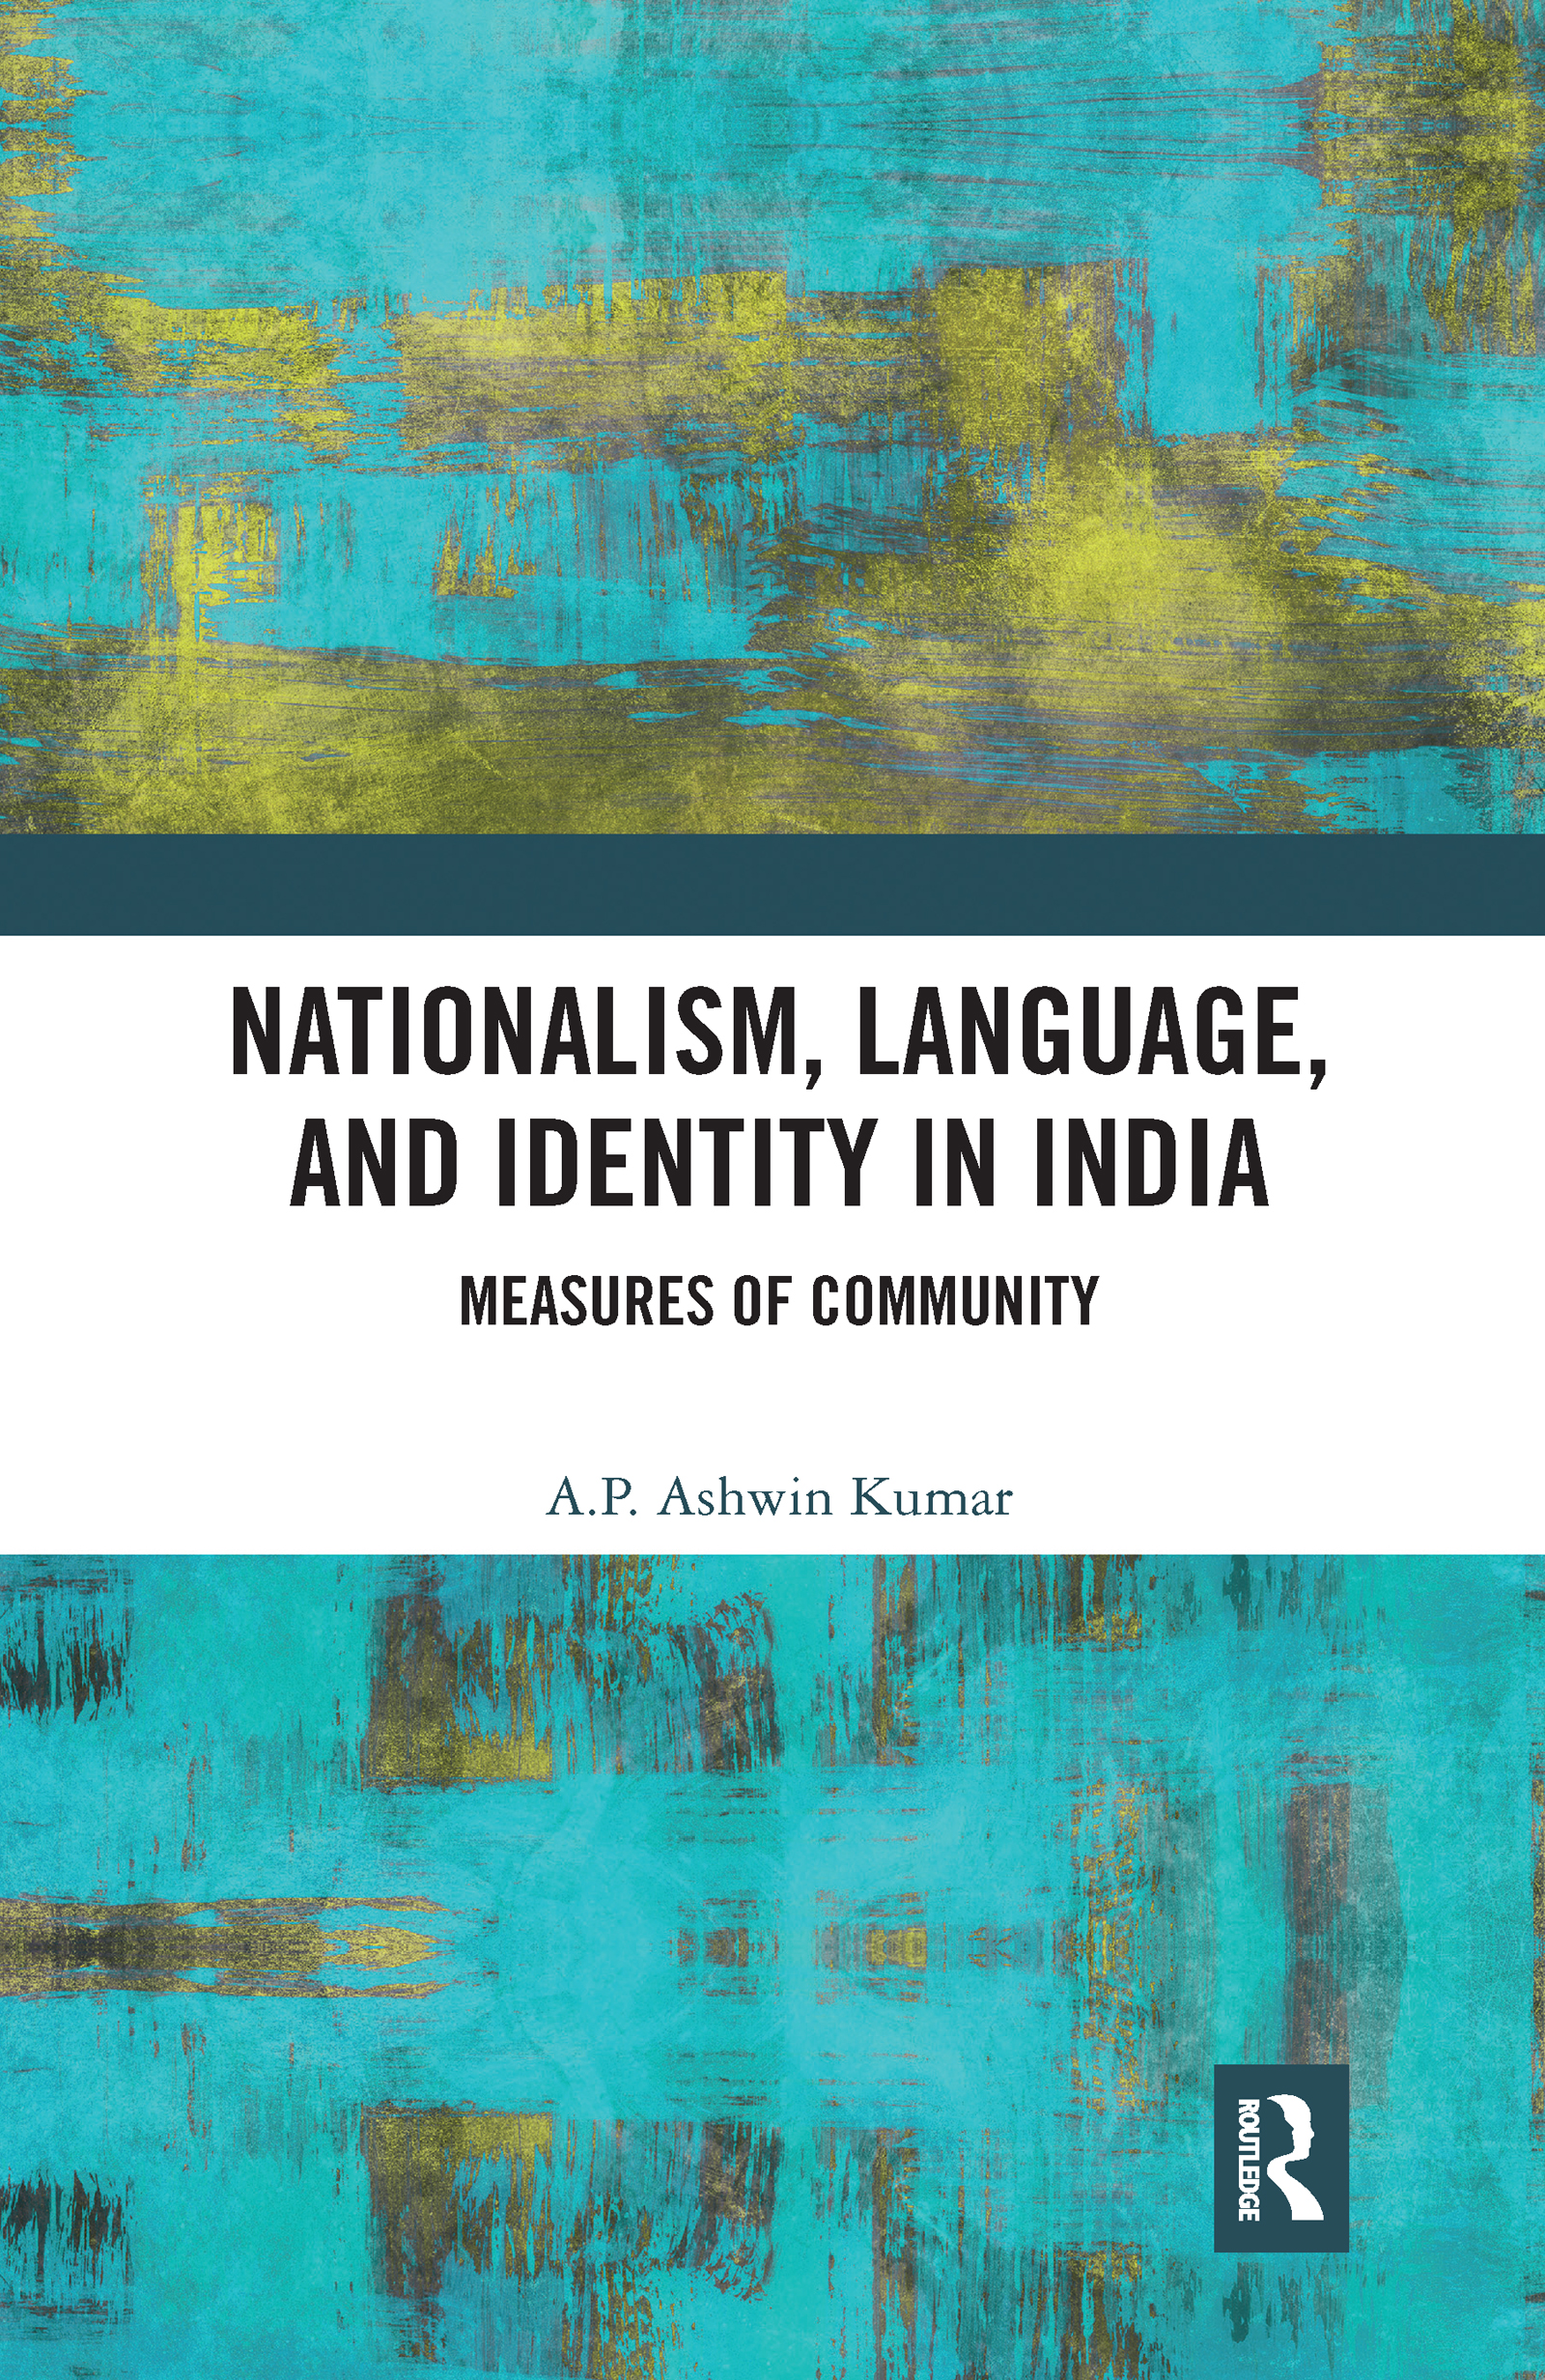 Nationalism, Language, and Identity in India